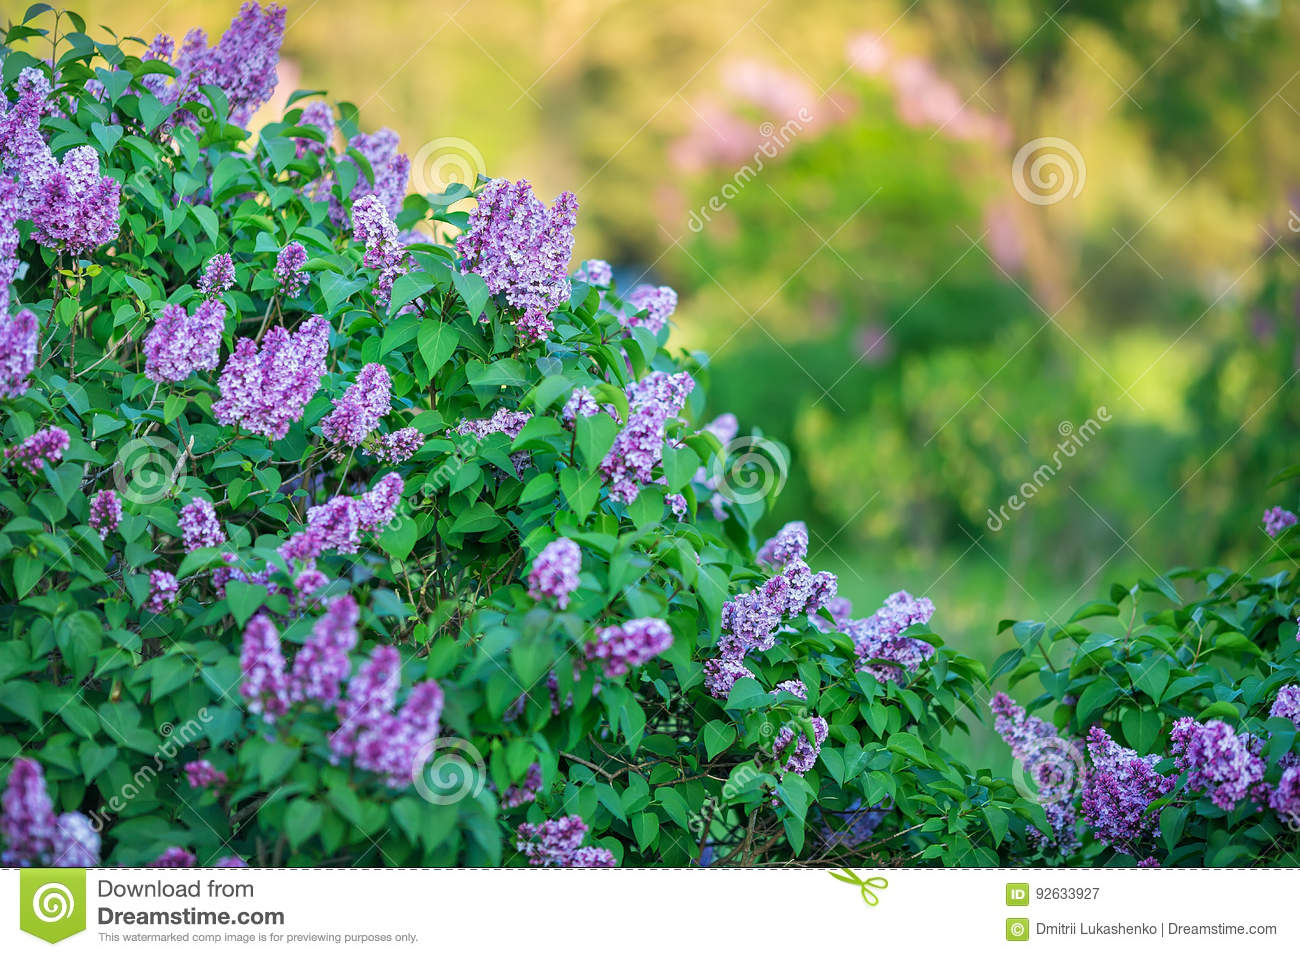 bush of wonderfull full of delicious scent flowers lilac purple and